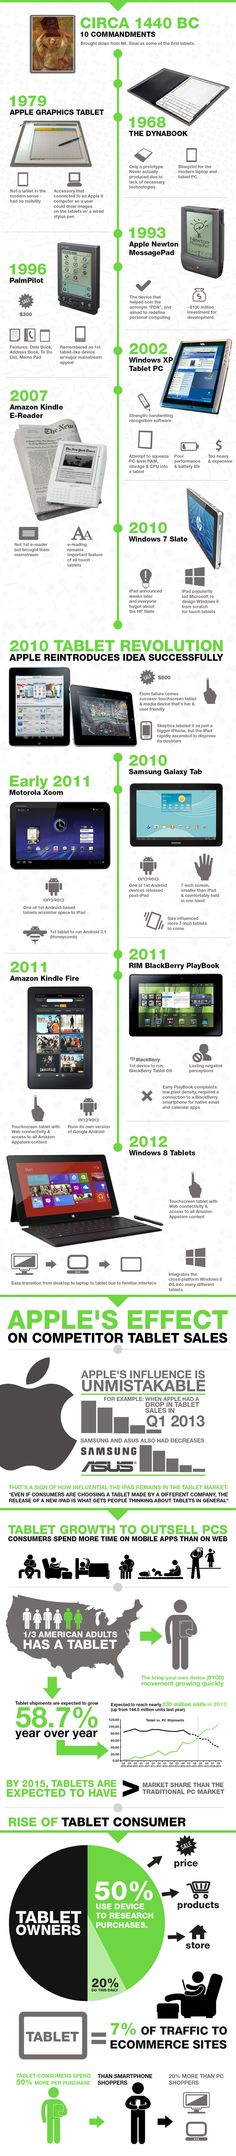 Tablets like the iPad have revolutionized the way we live our daily lives